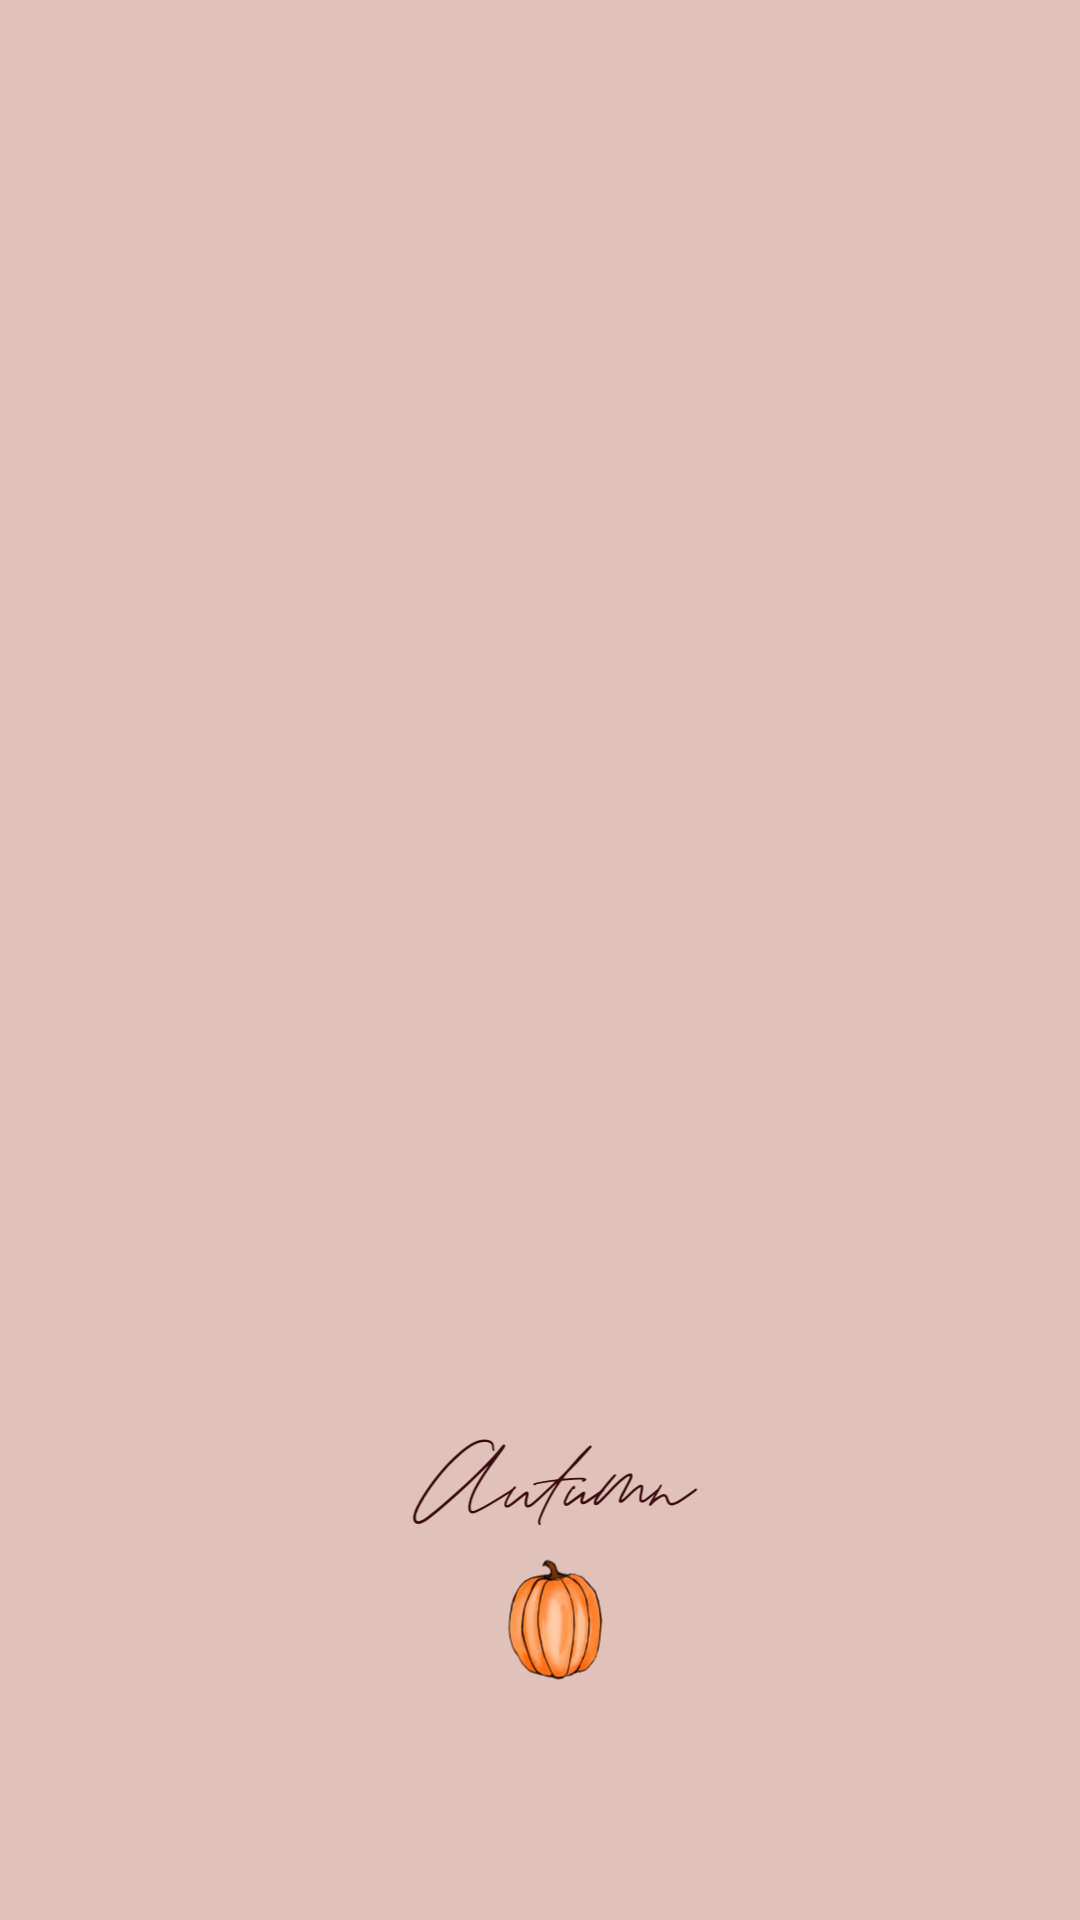 Pretty Fall Iphone Wallpaper Free Phone Wallpapers October Edition Dizzybrunette